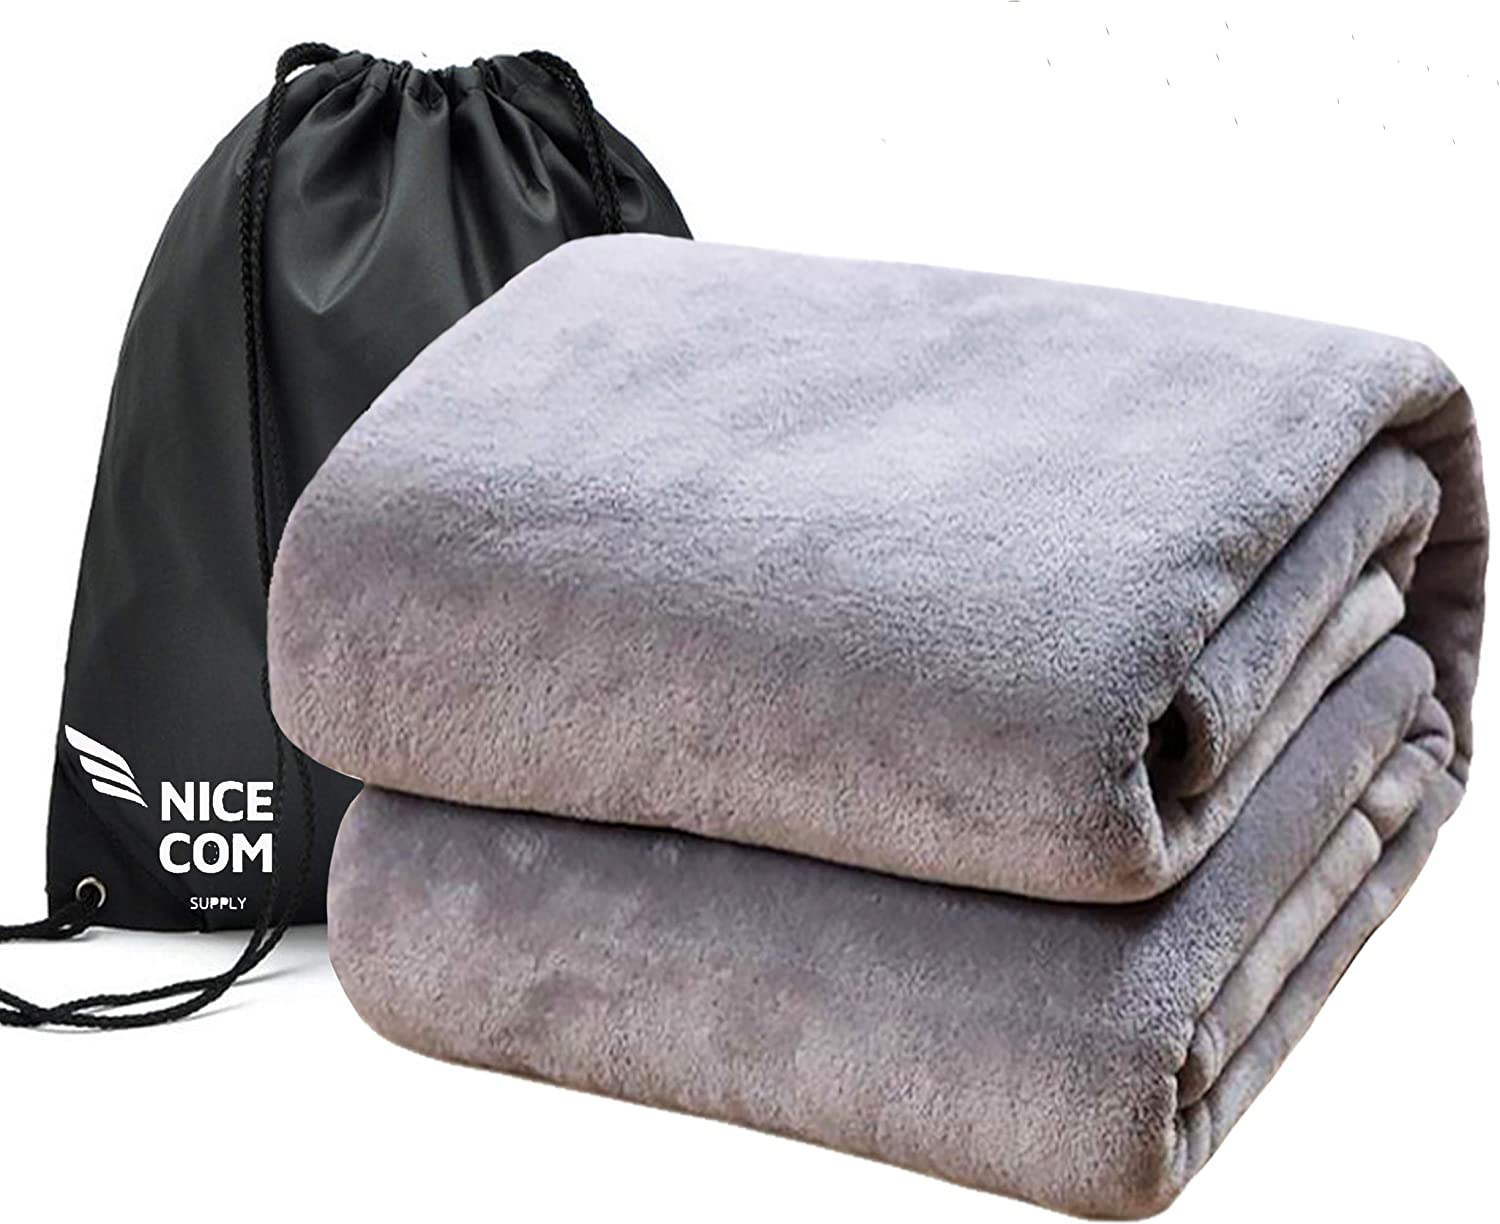 Large Travel Blanket 60x80 Backpack Size Bed Gre Special Campaign Twin Max 71% OFF